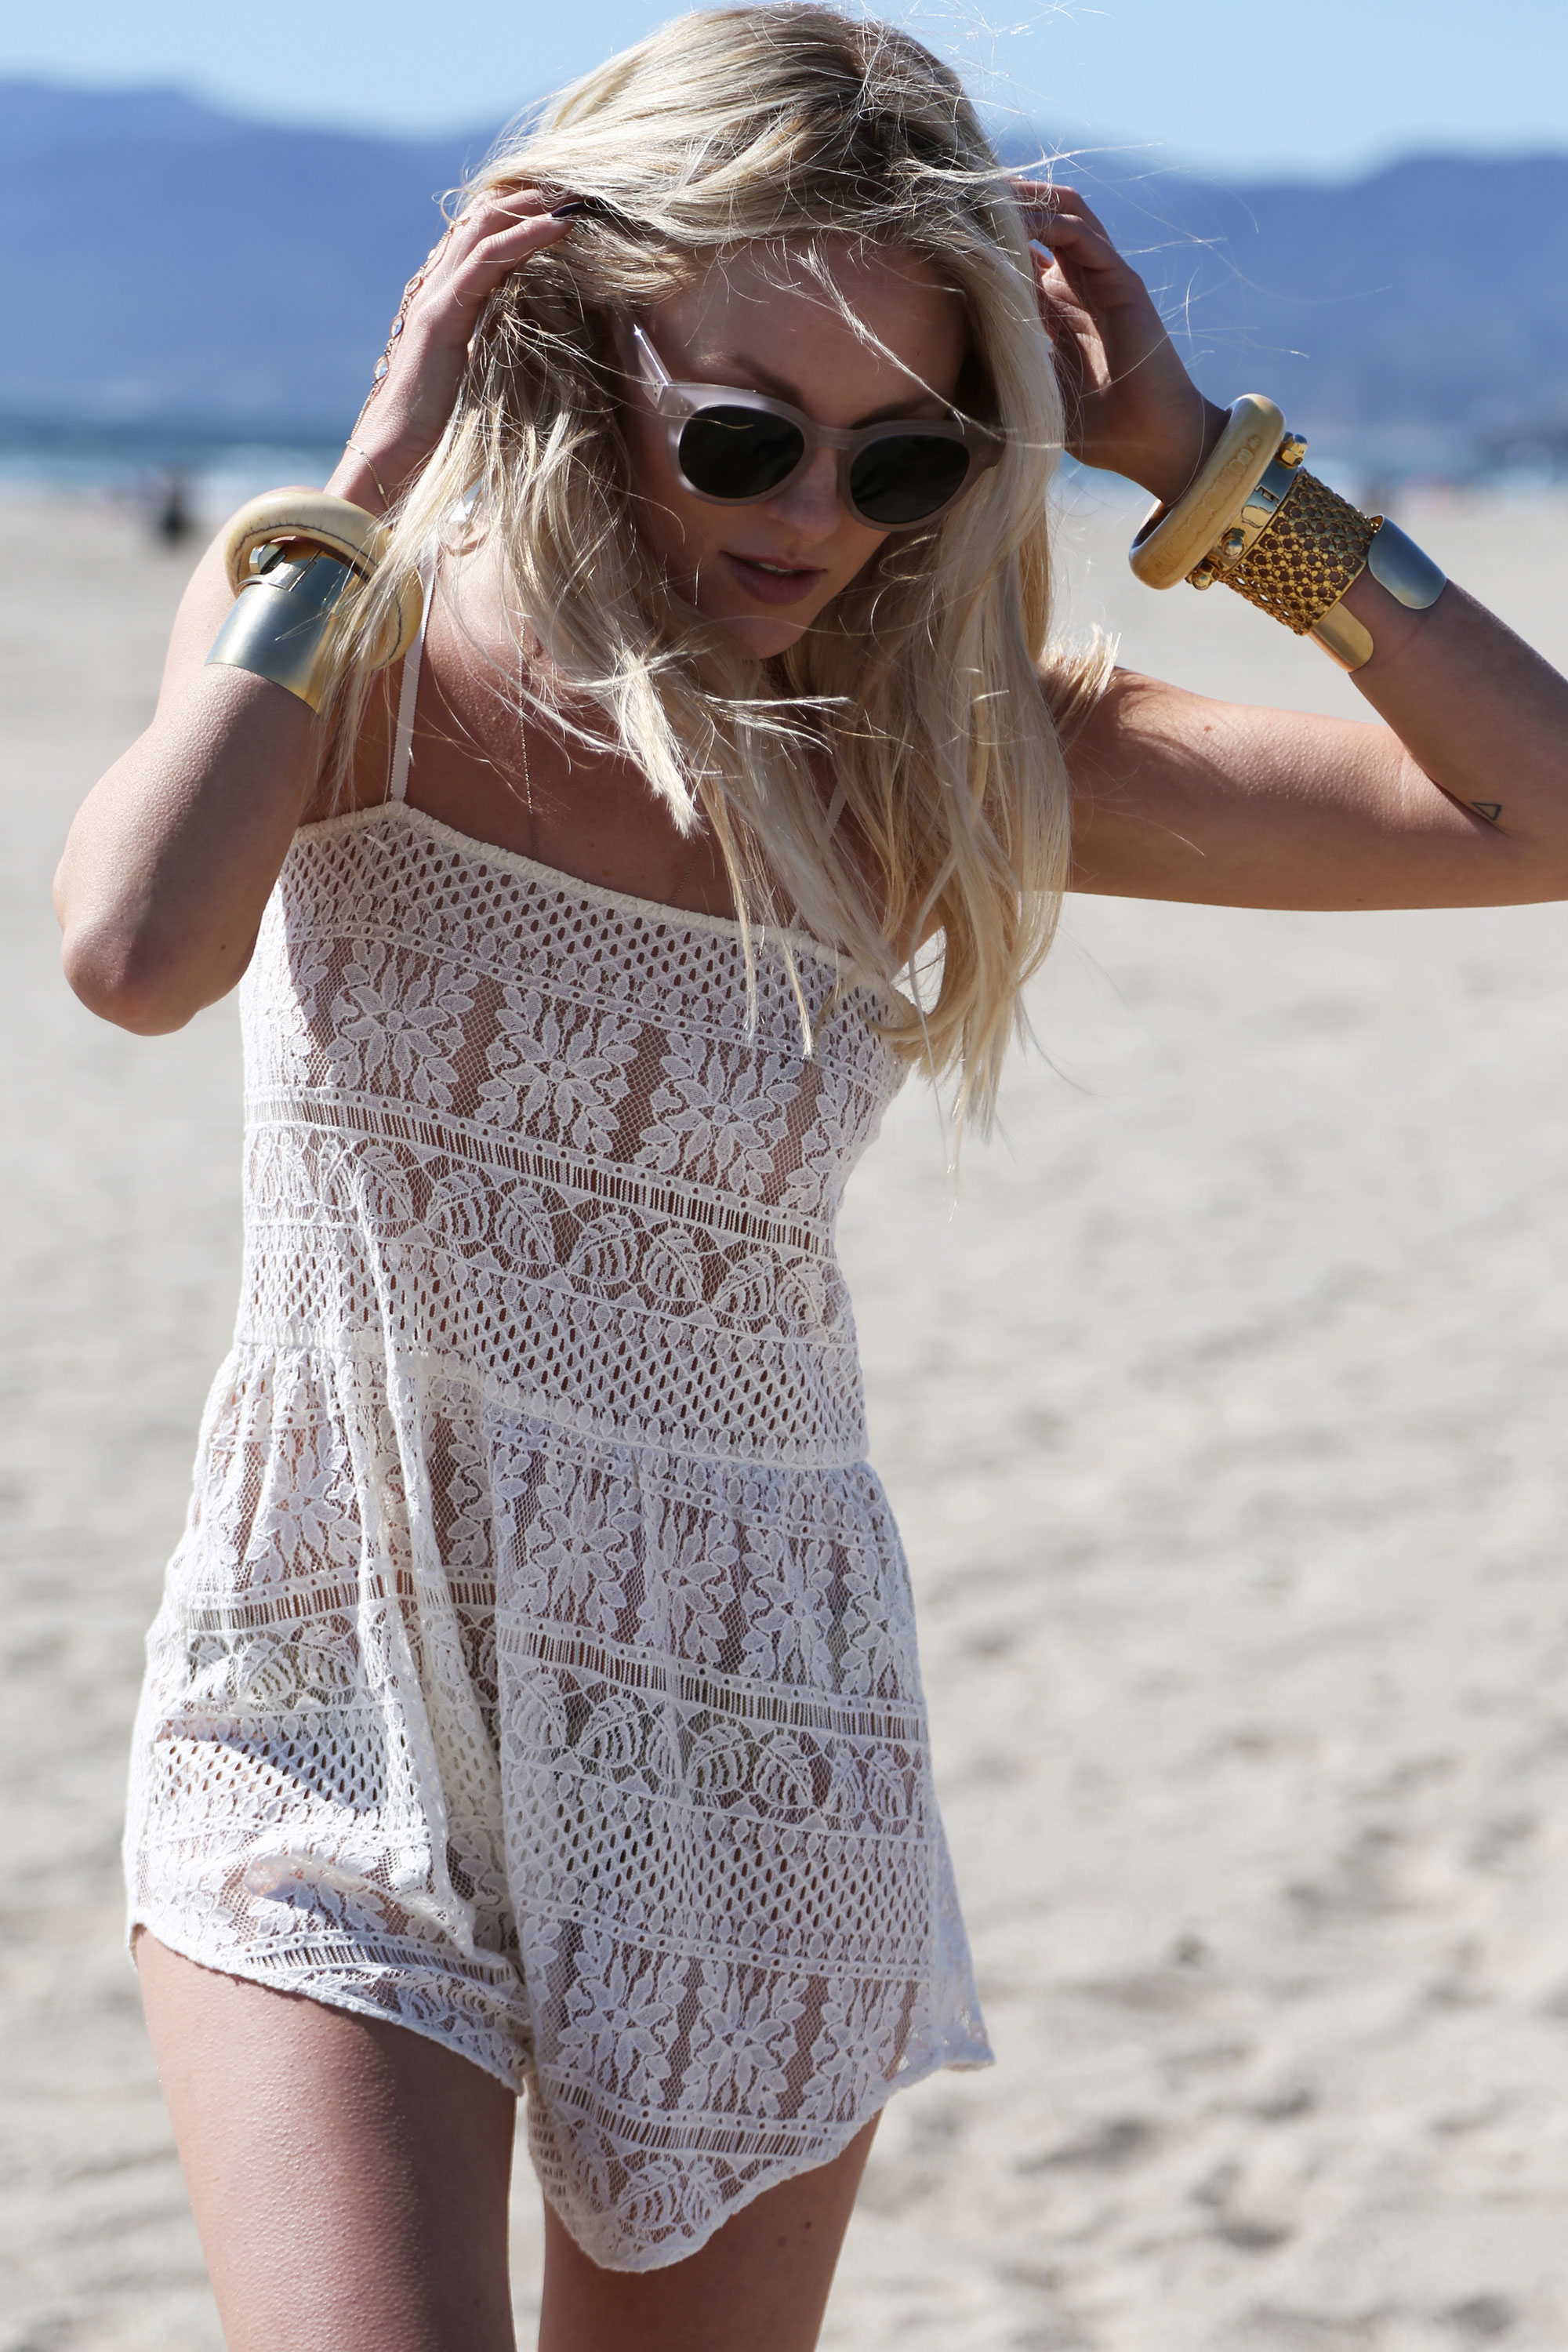 Lace Jumper From Zinke Via Peace Love Shea